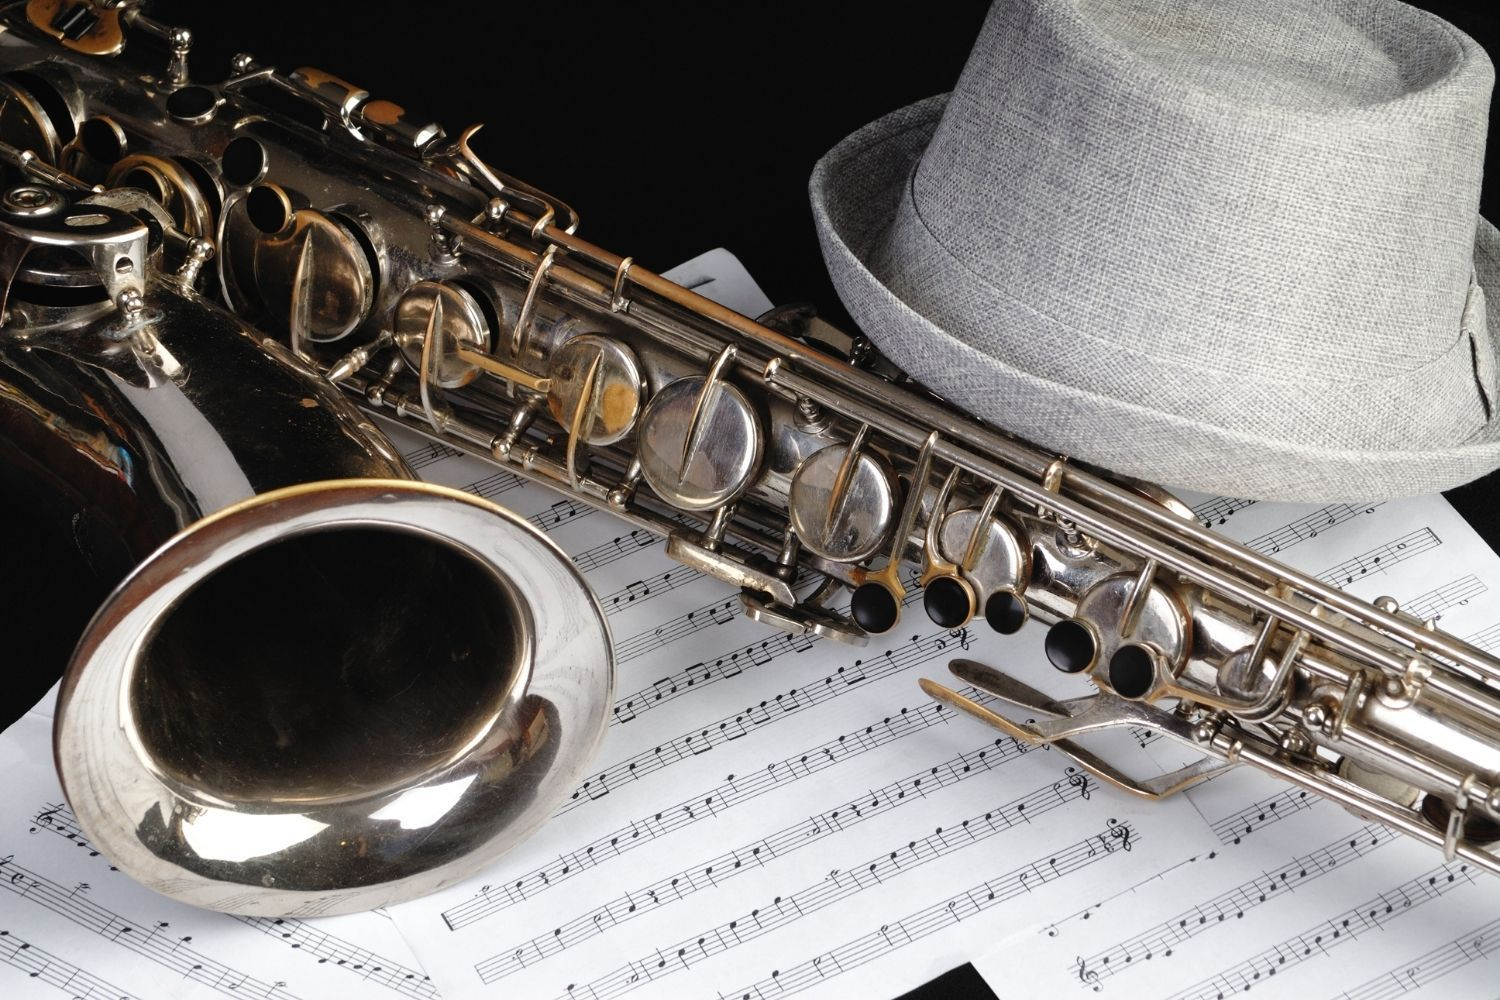 Learn to play the alto saxophone in just 30 minutes per week! Practice videos included.